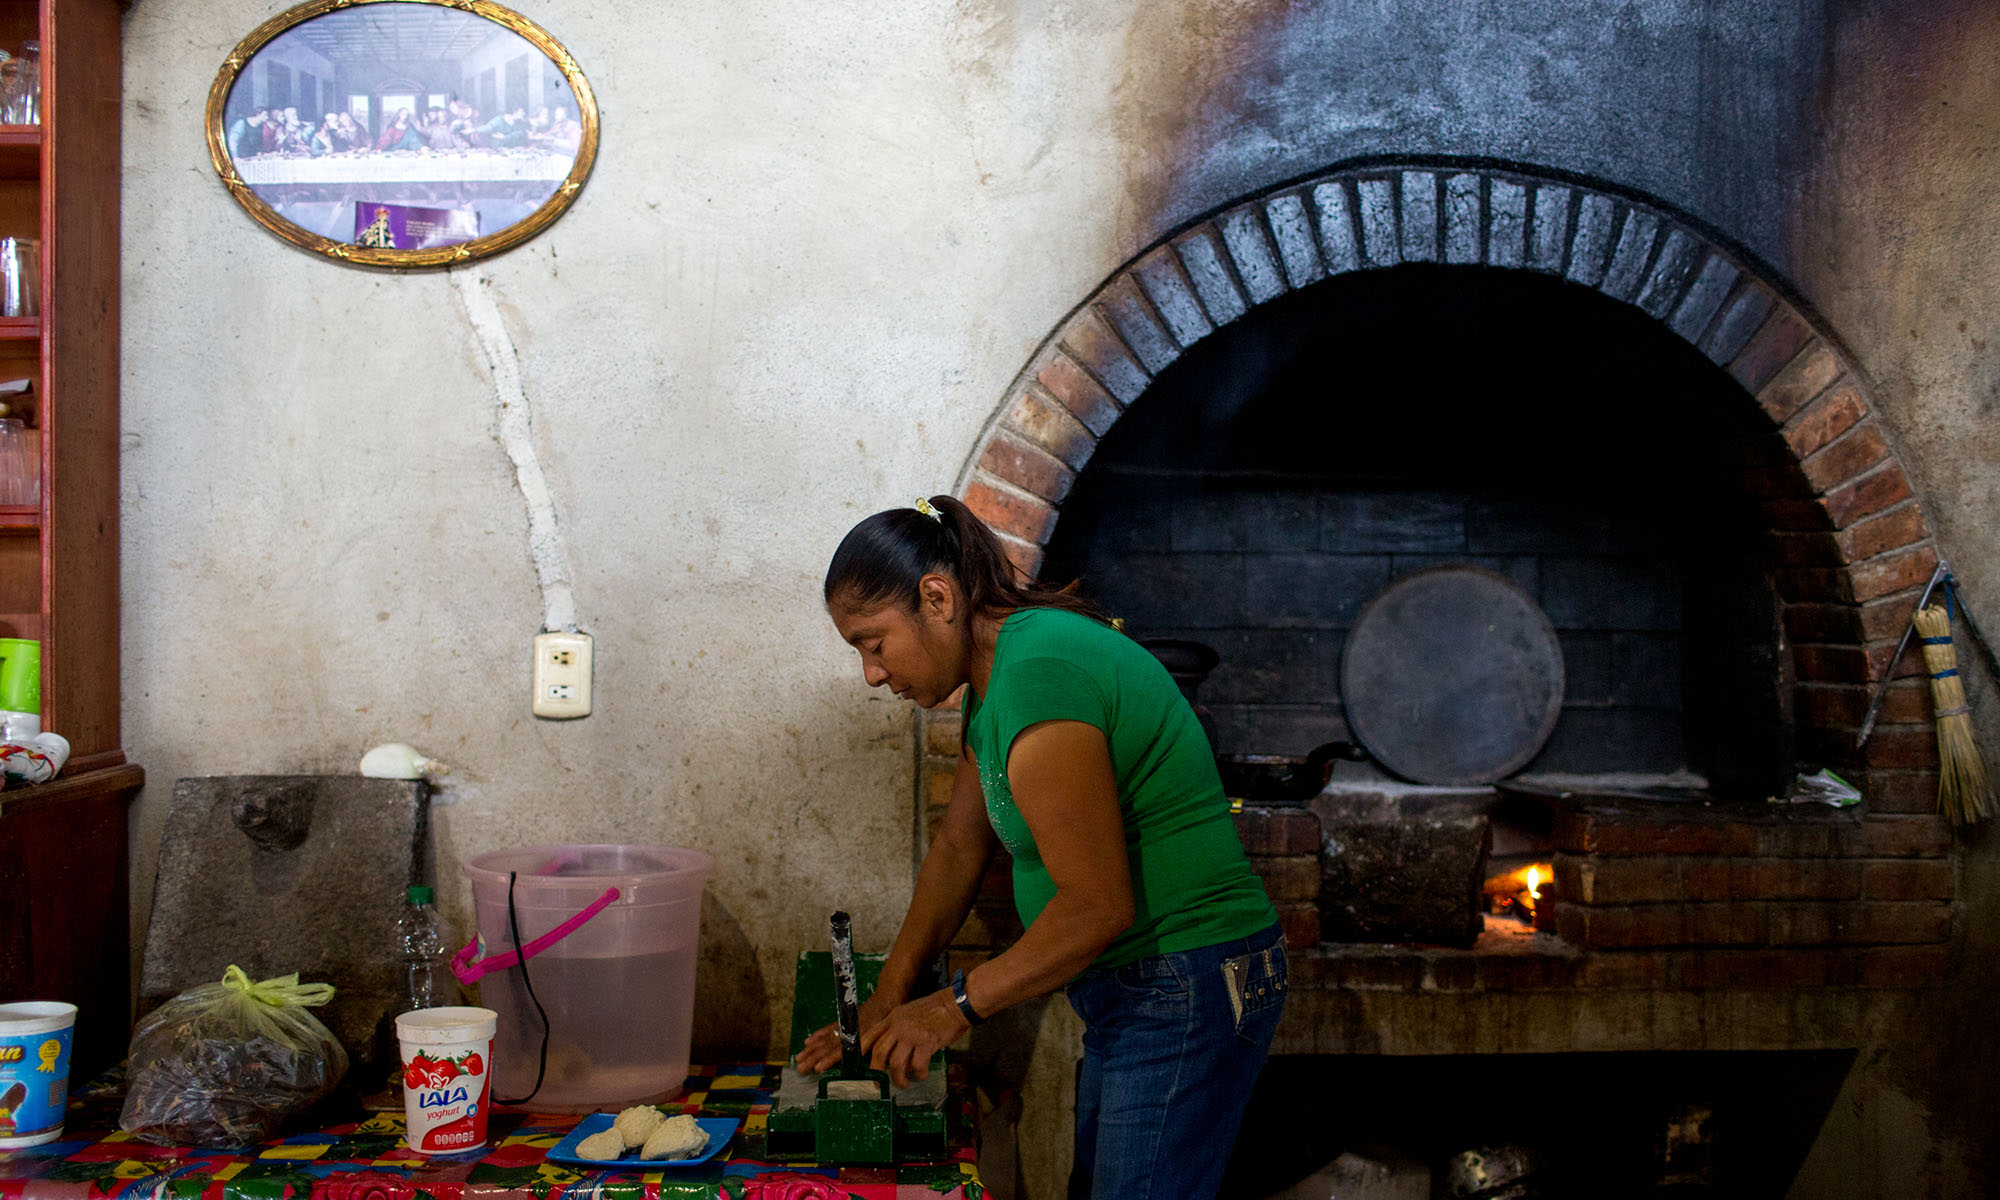 """Martinez makes tortillas in her kitchen. Since her daughters no longer help support her in Tancama, Mexico - an area with few job opportunities - she works as a chef for tourists in a nearby eco-lodge. Martinez doesn't remember when her children left to find work in the U.S., some time between five and 10 years ago. Because they are undocumented, they can't find work easily. She said she hasn't spoken to them in eight to 12 months. When asked if she missed her daughters she said, """"Of course. A lot… I can't see them here because they can't come back and forth."""" (Photo by Courtney Pedroza/Cronkite Borderlands Initiative)"""